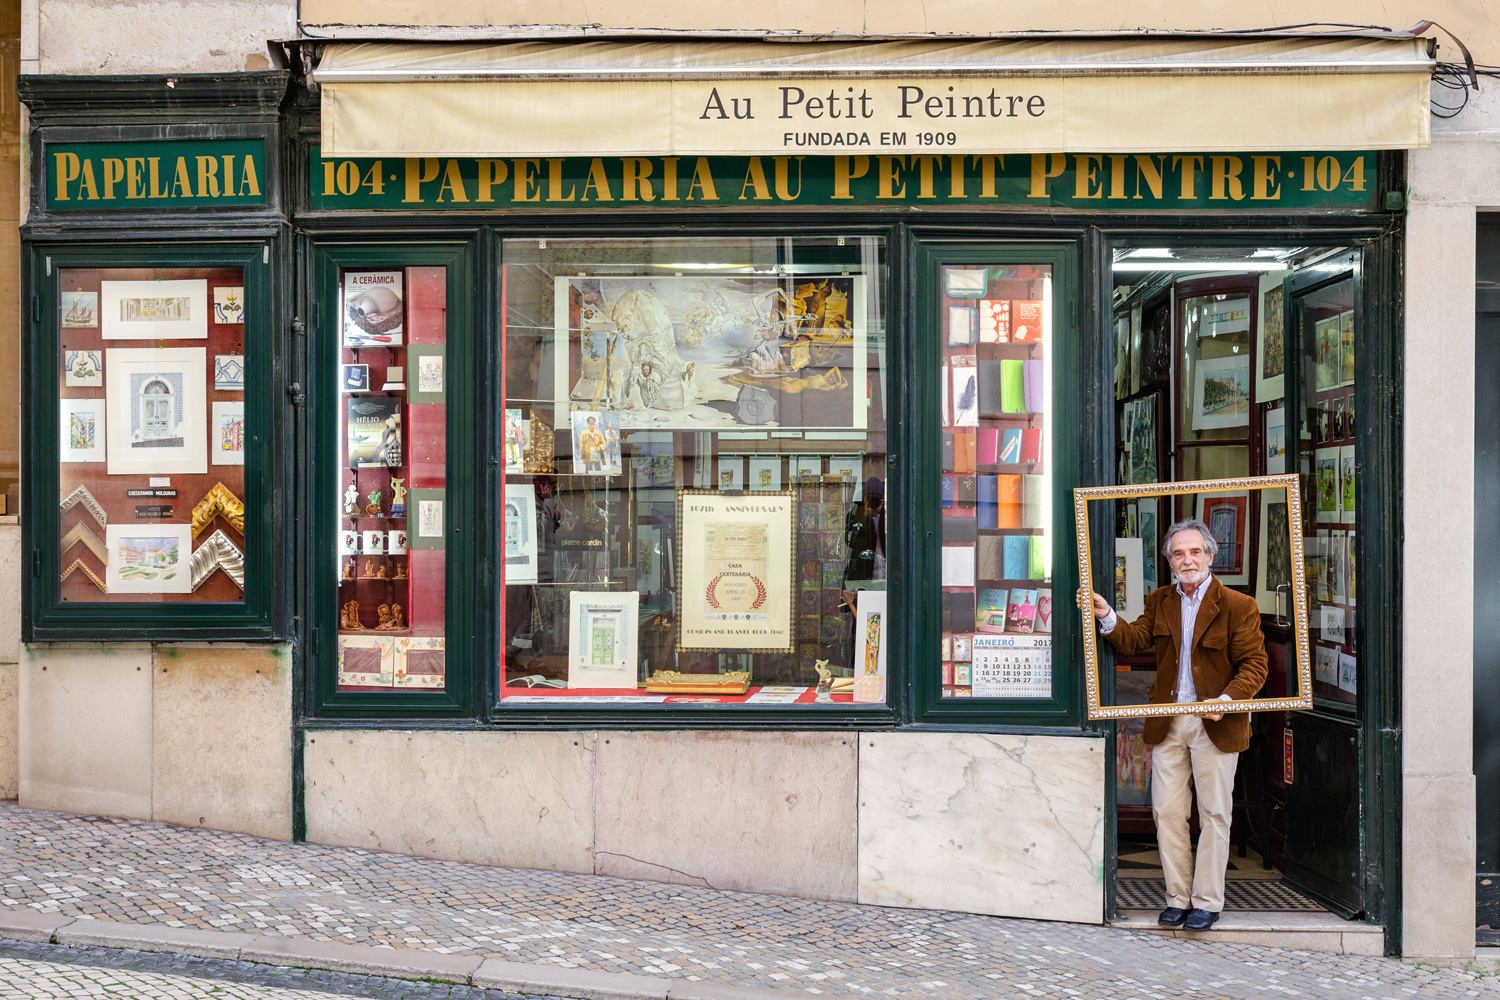 Life is a work of art for José Manuel Fragueiro Dominguez, stationery store owner